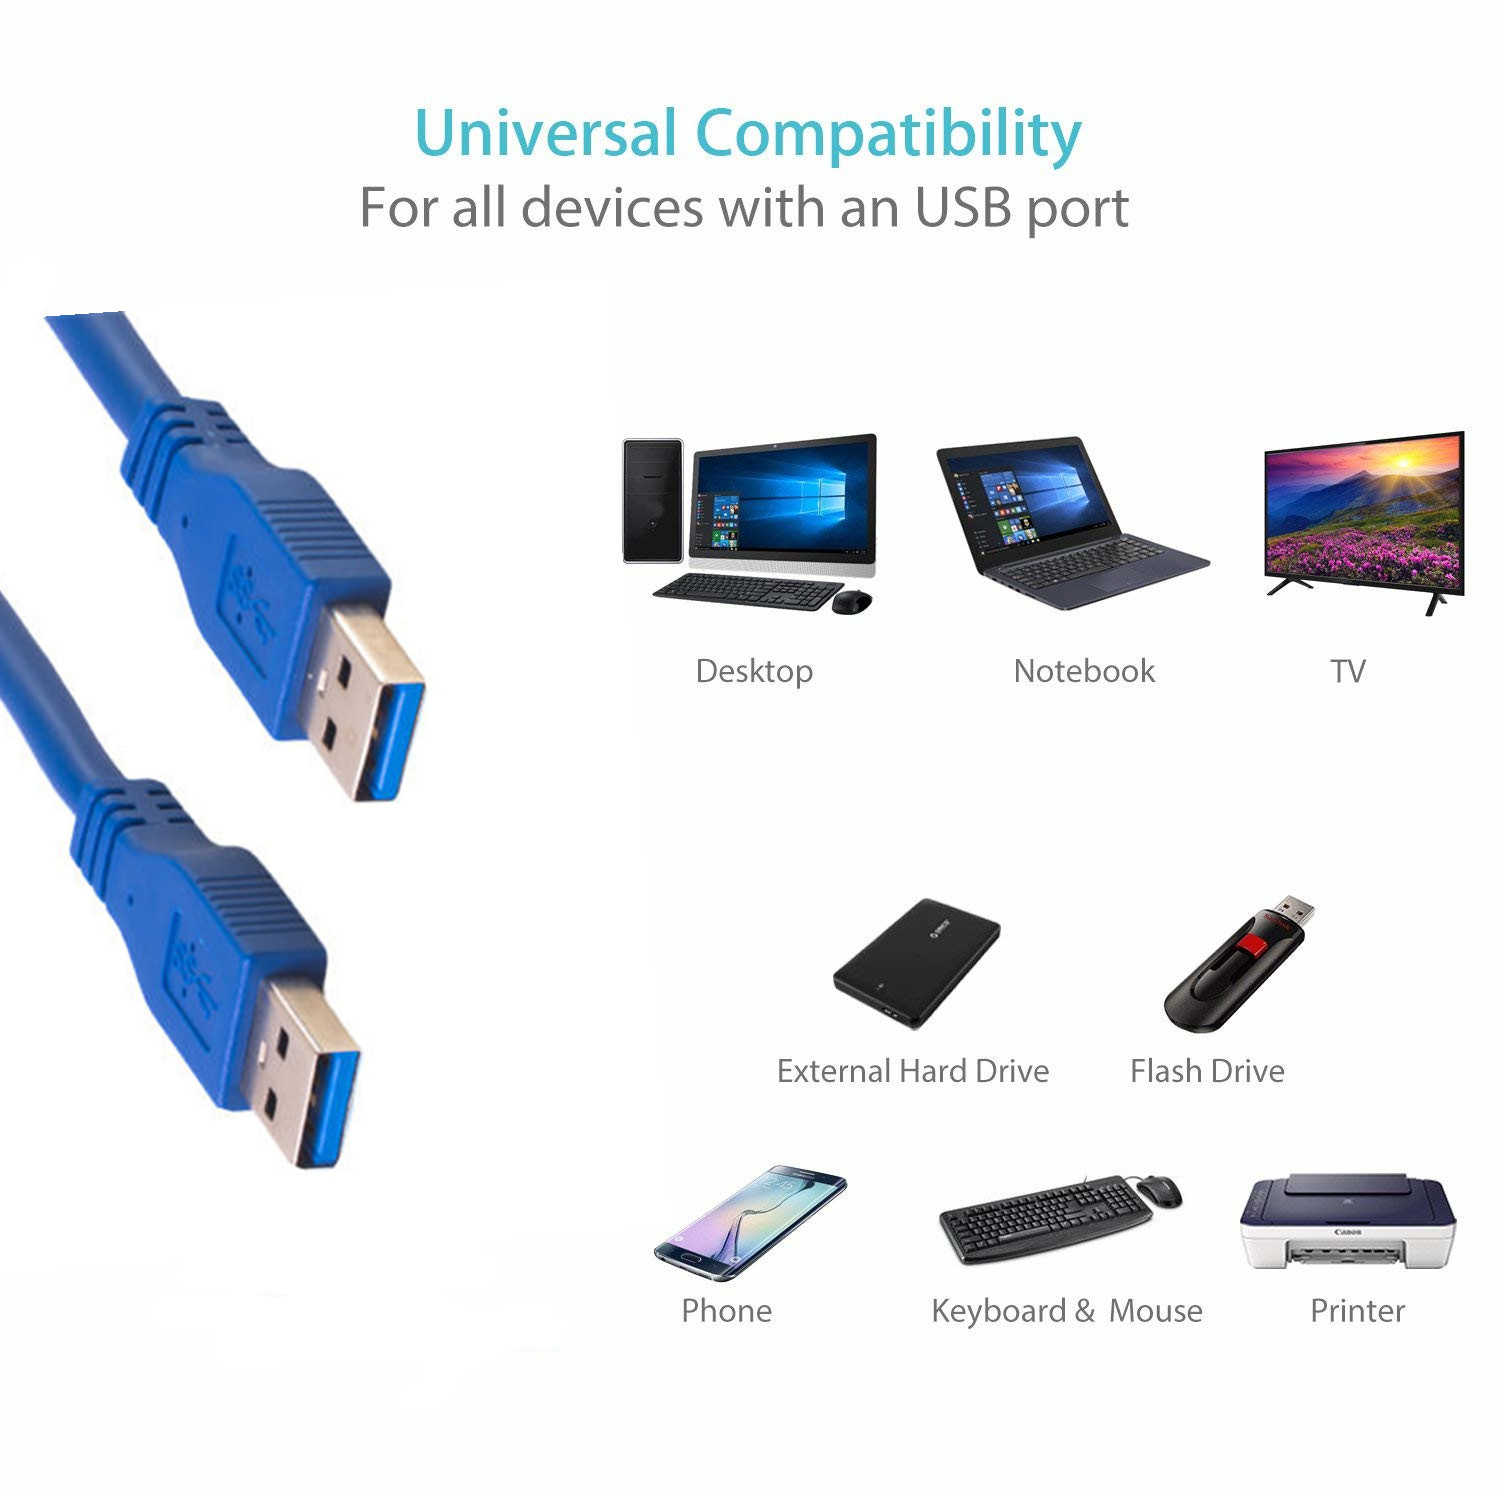 Super speed data download downmale to male 5Gbps 3A charging usb 3.0 cable Extension